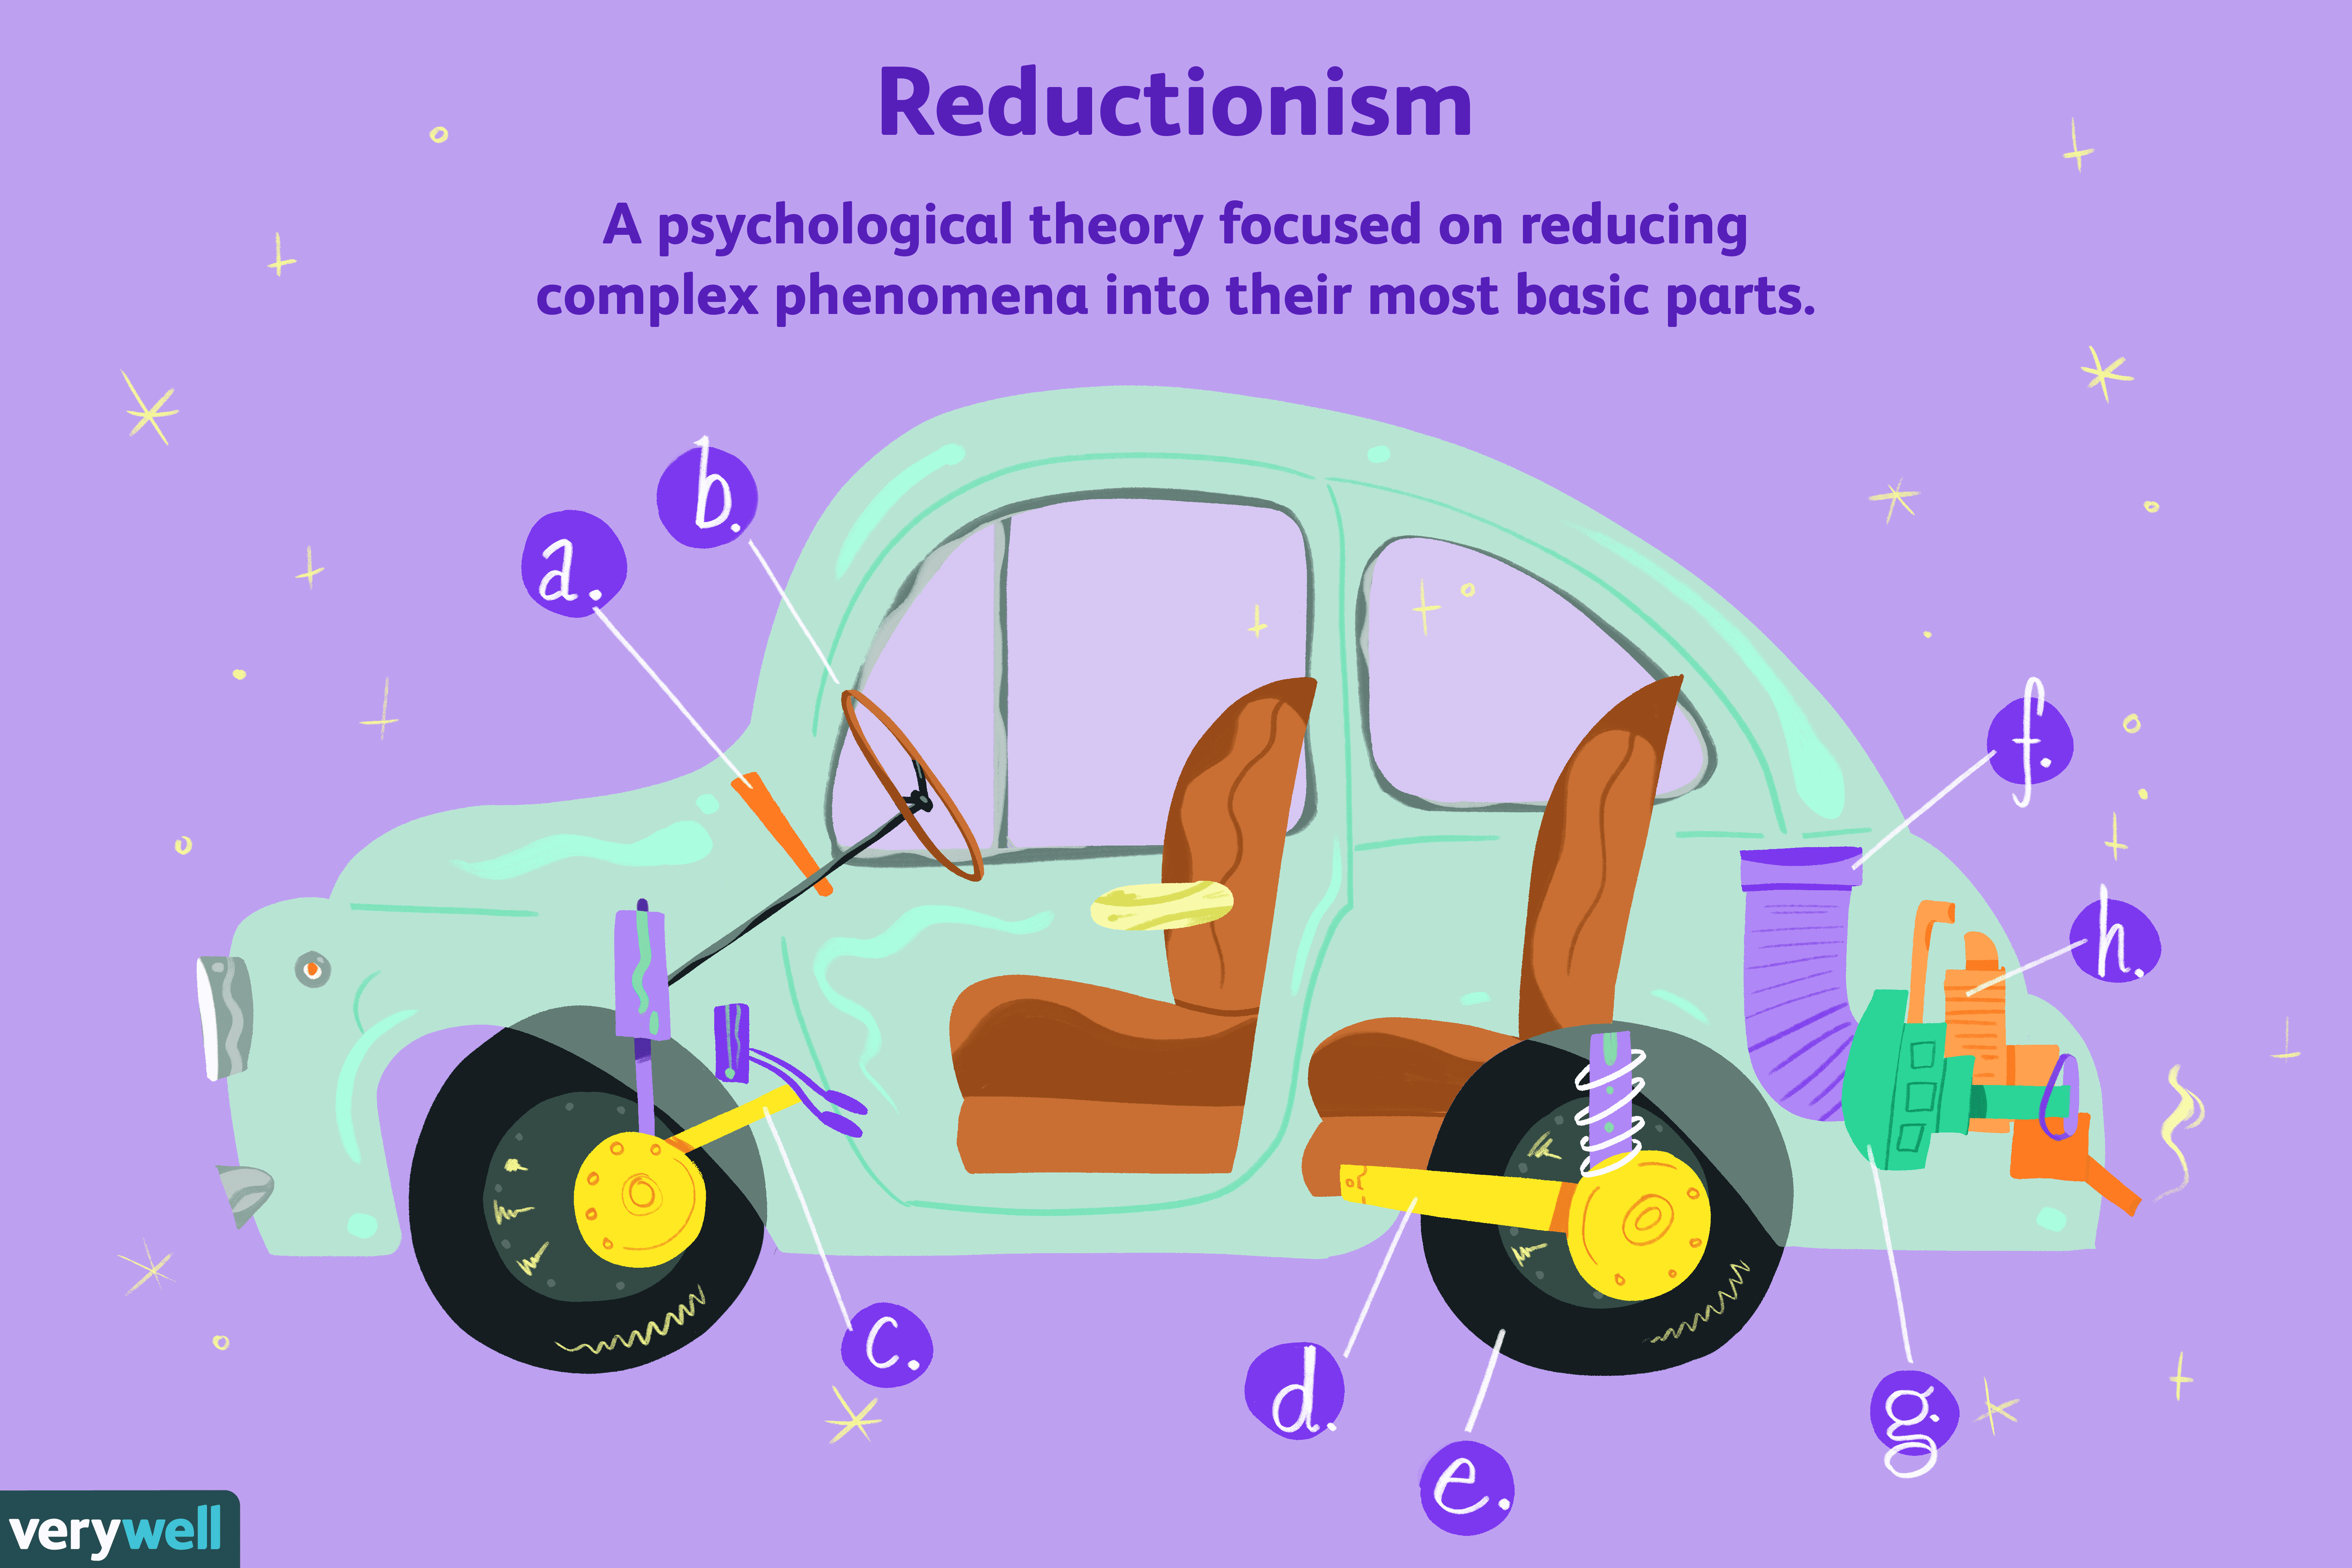 What is reductionism?